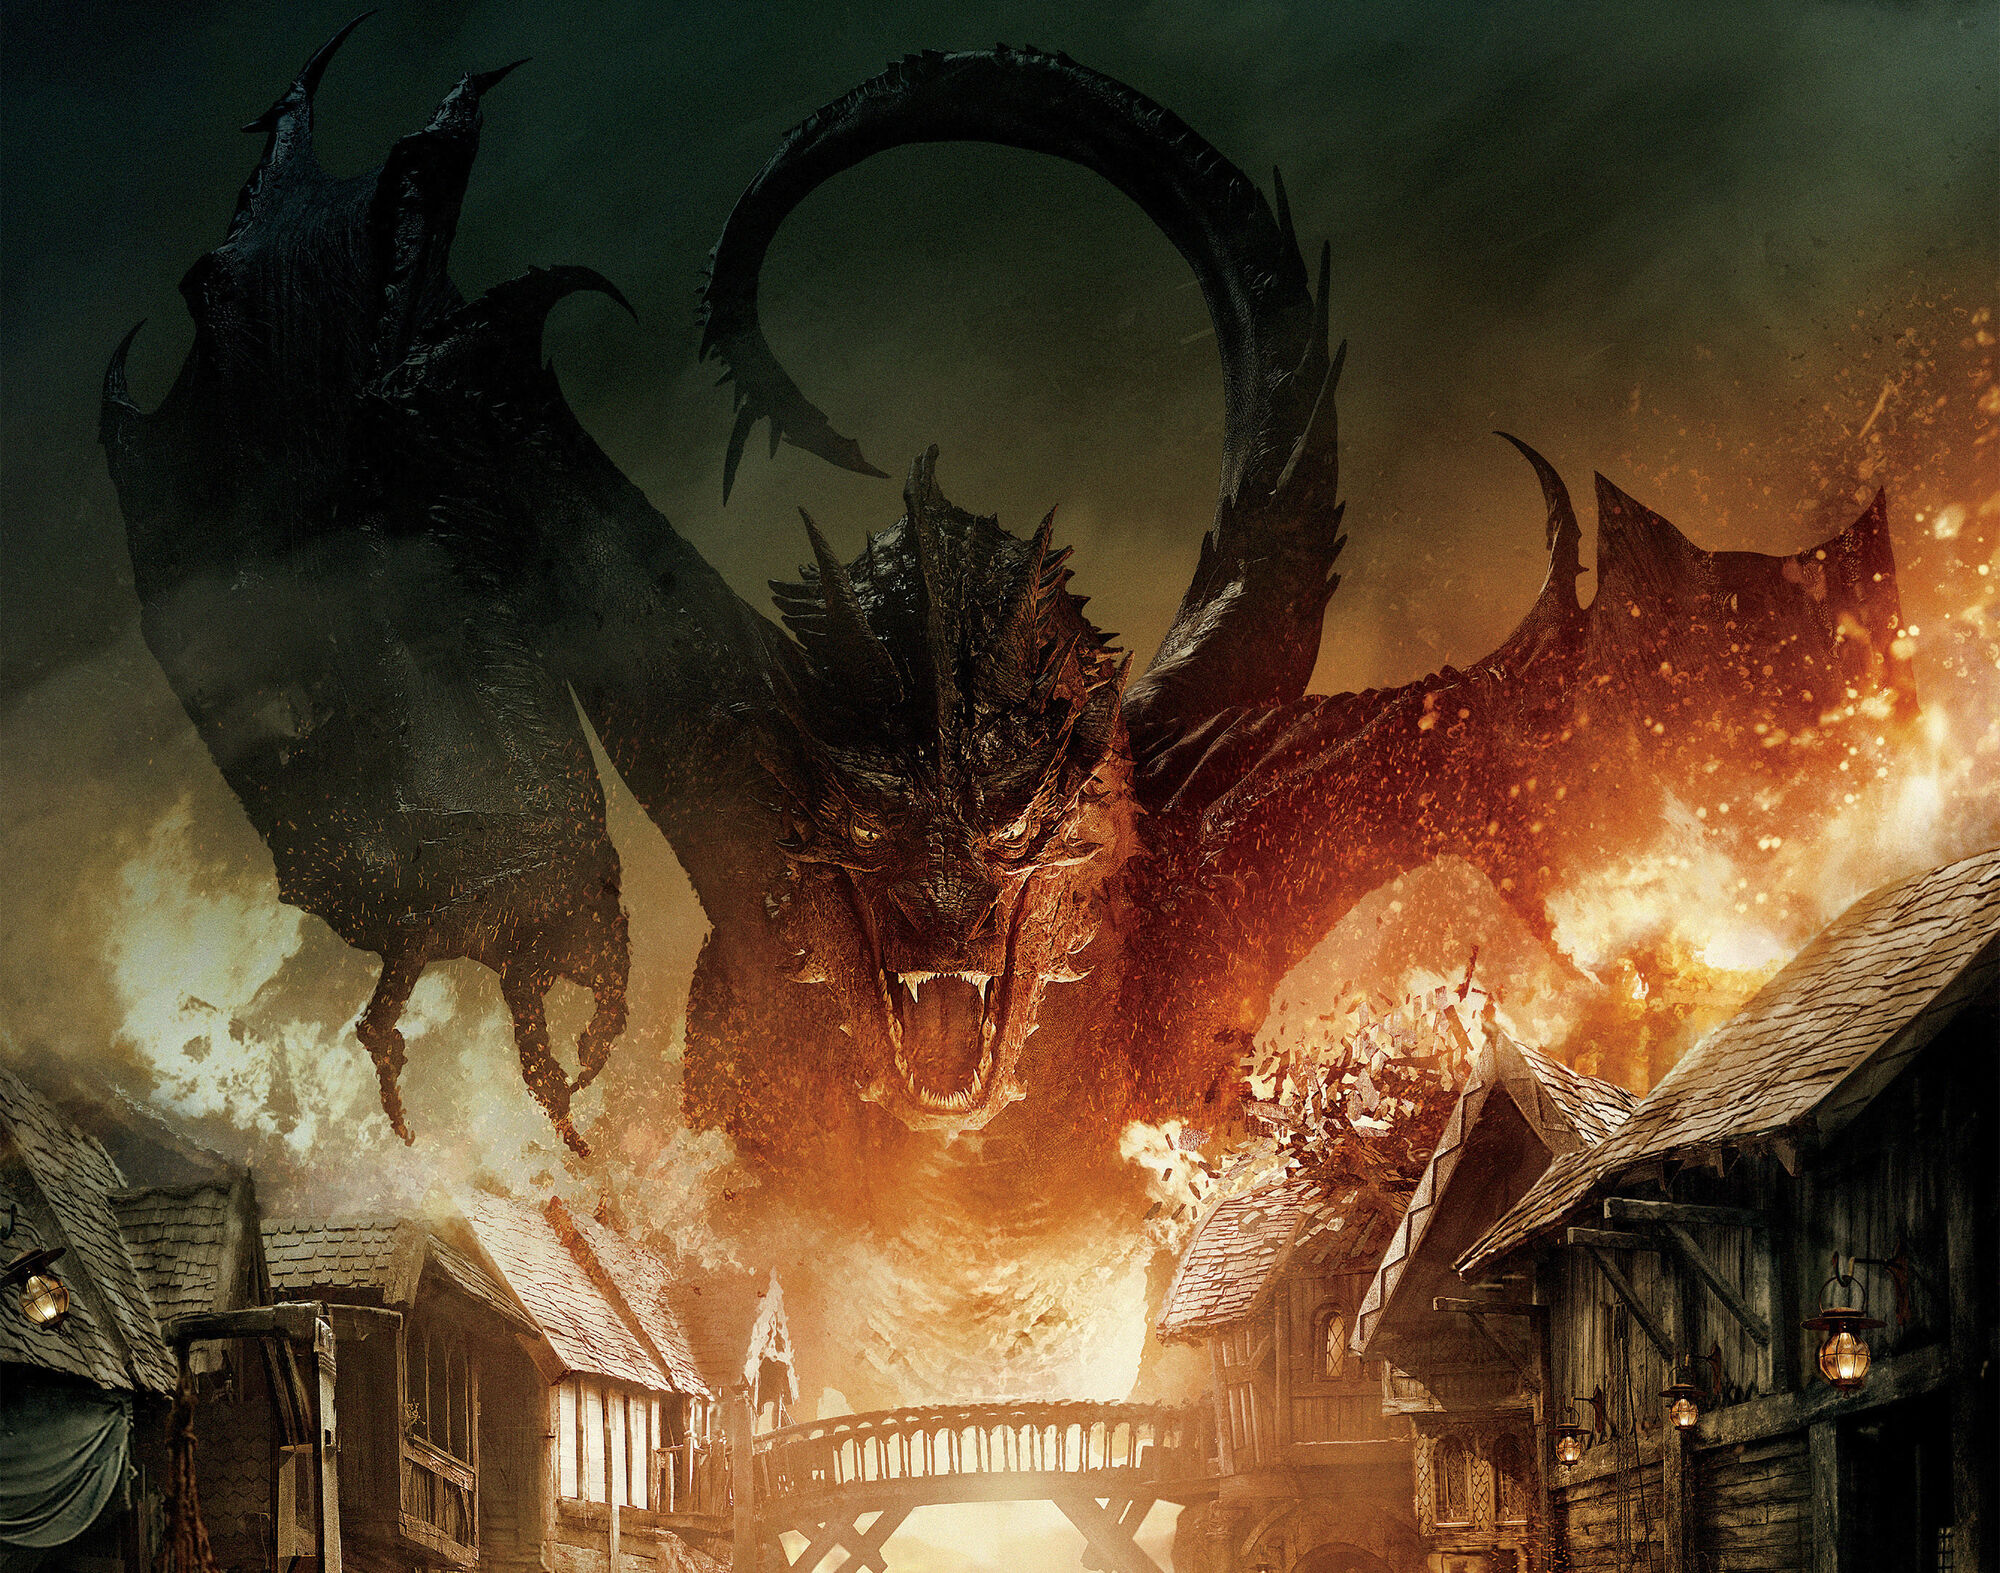 the villain from The Hobbit, Smaug the dragon